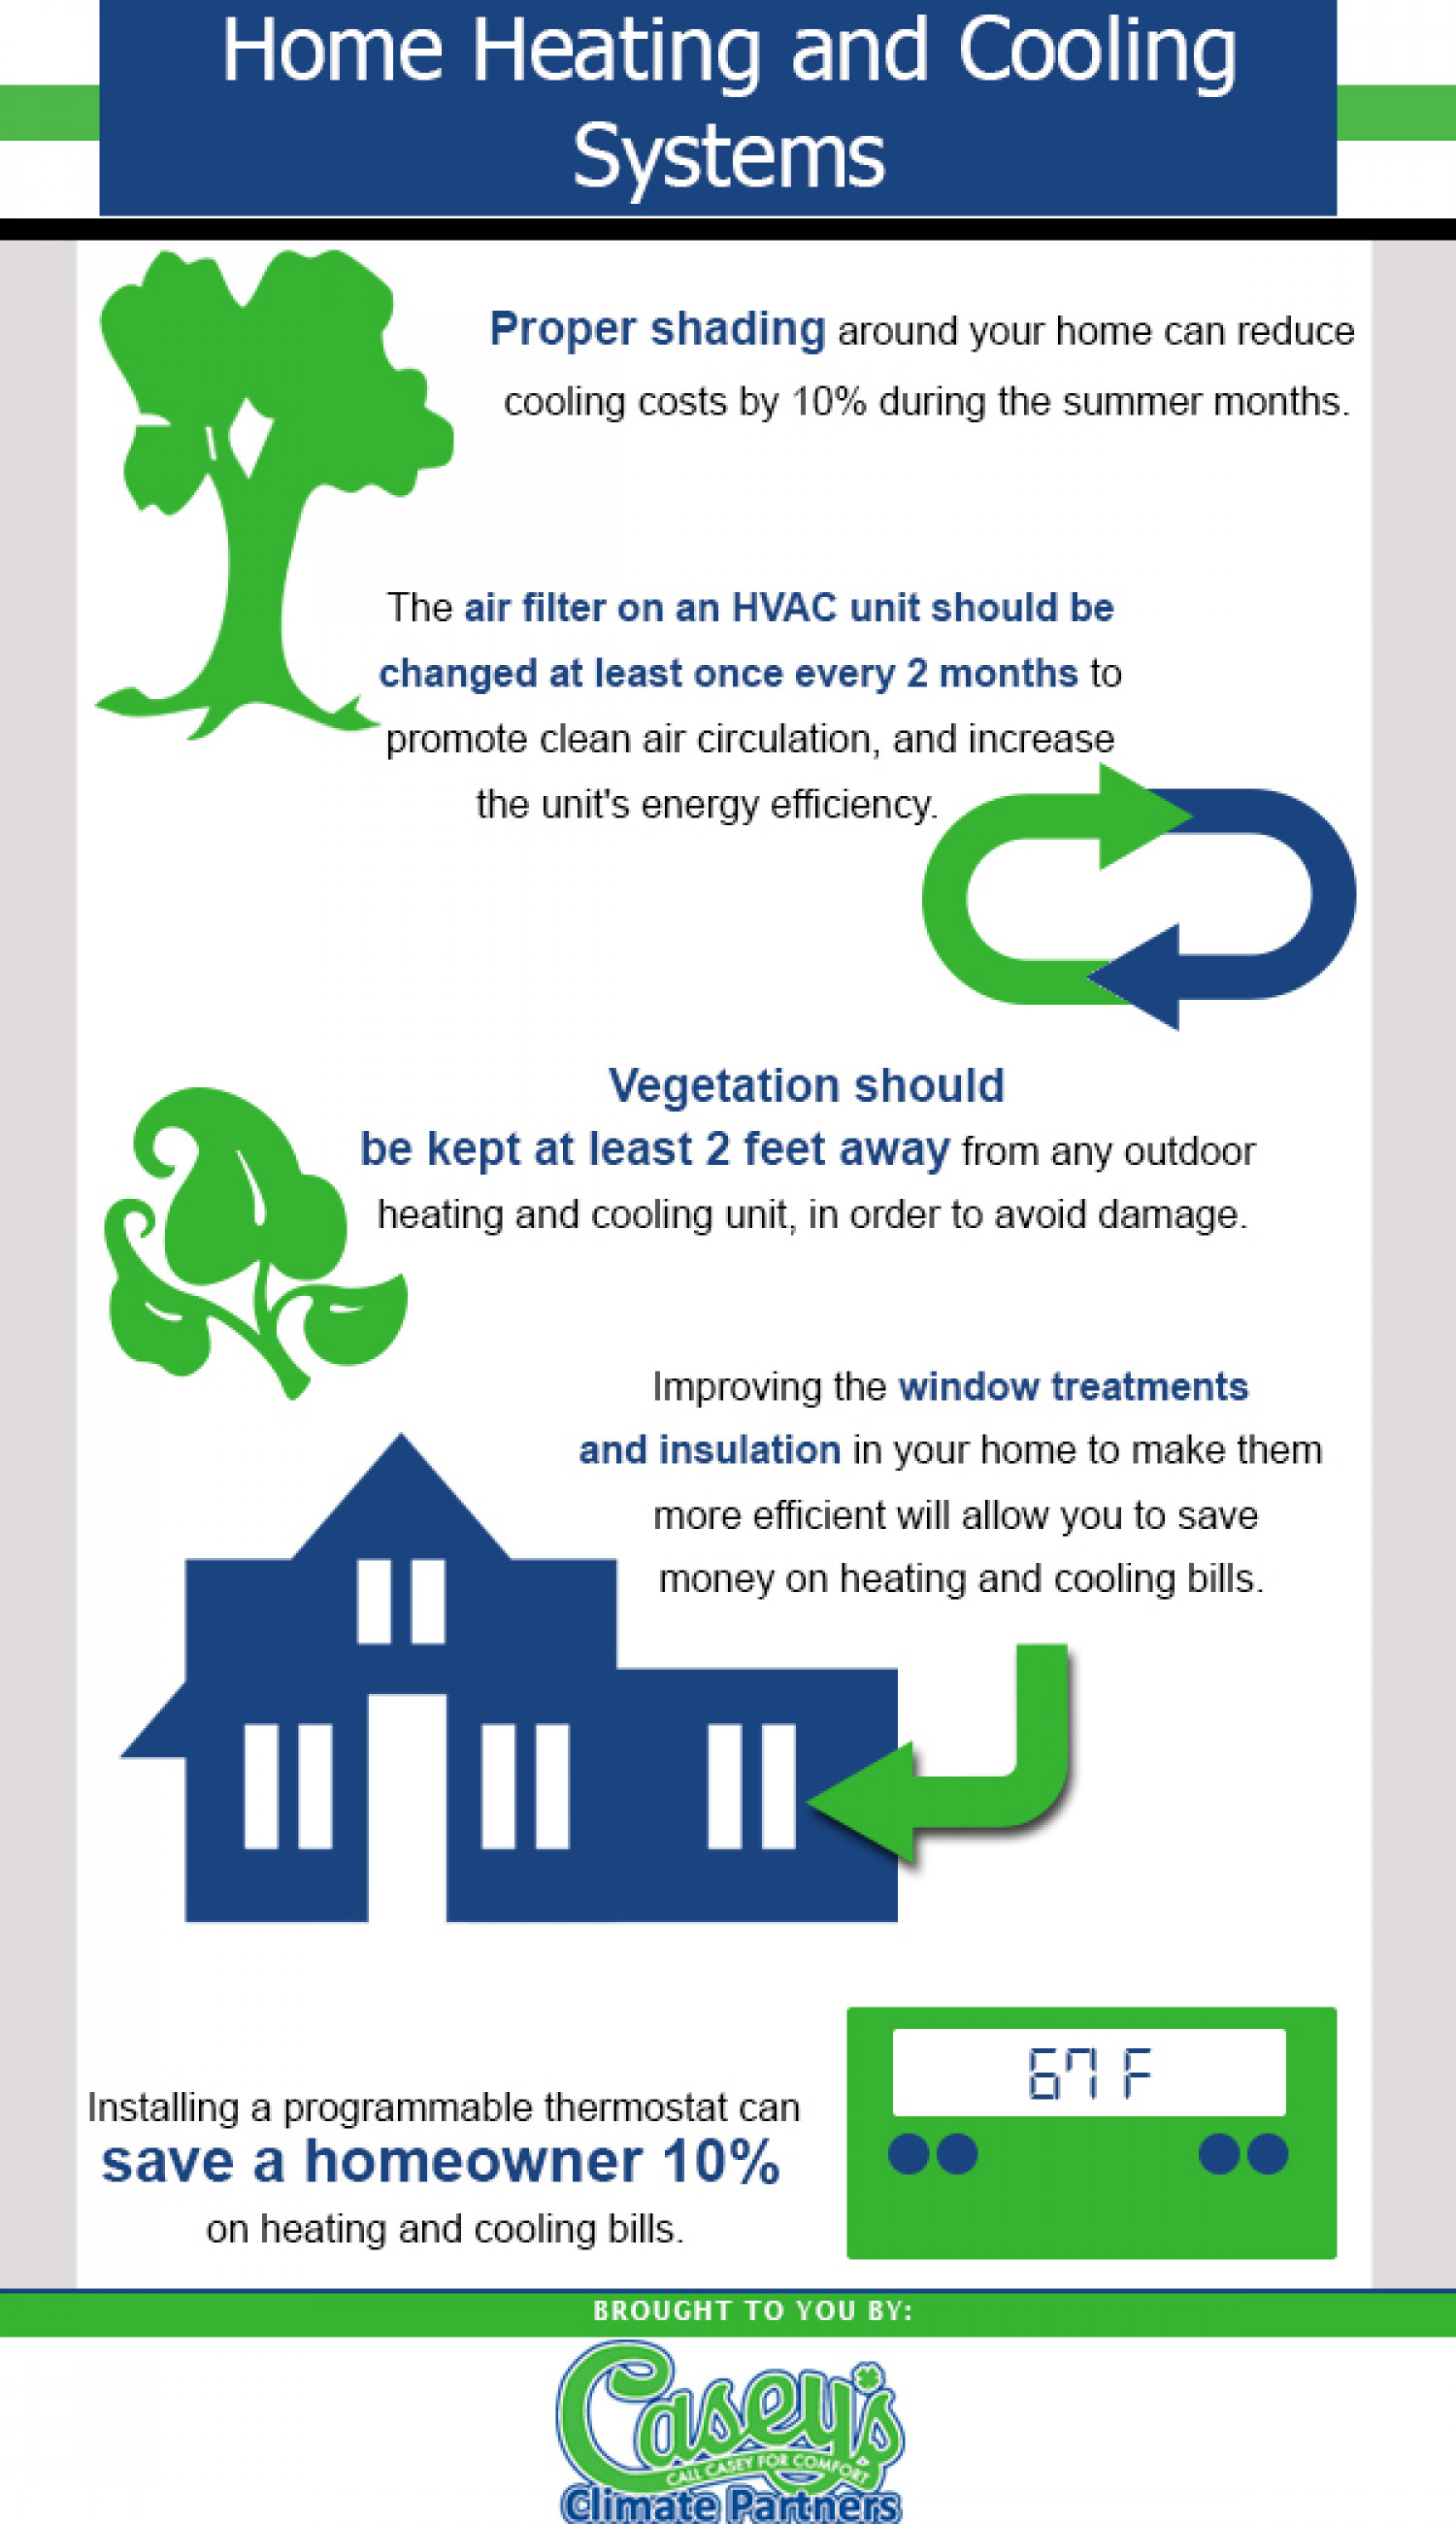 Home Heating and Cooling Systems Infographic